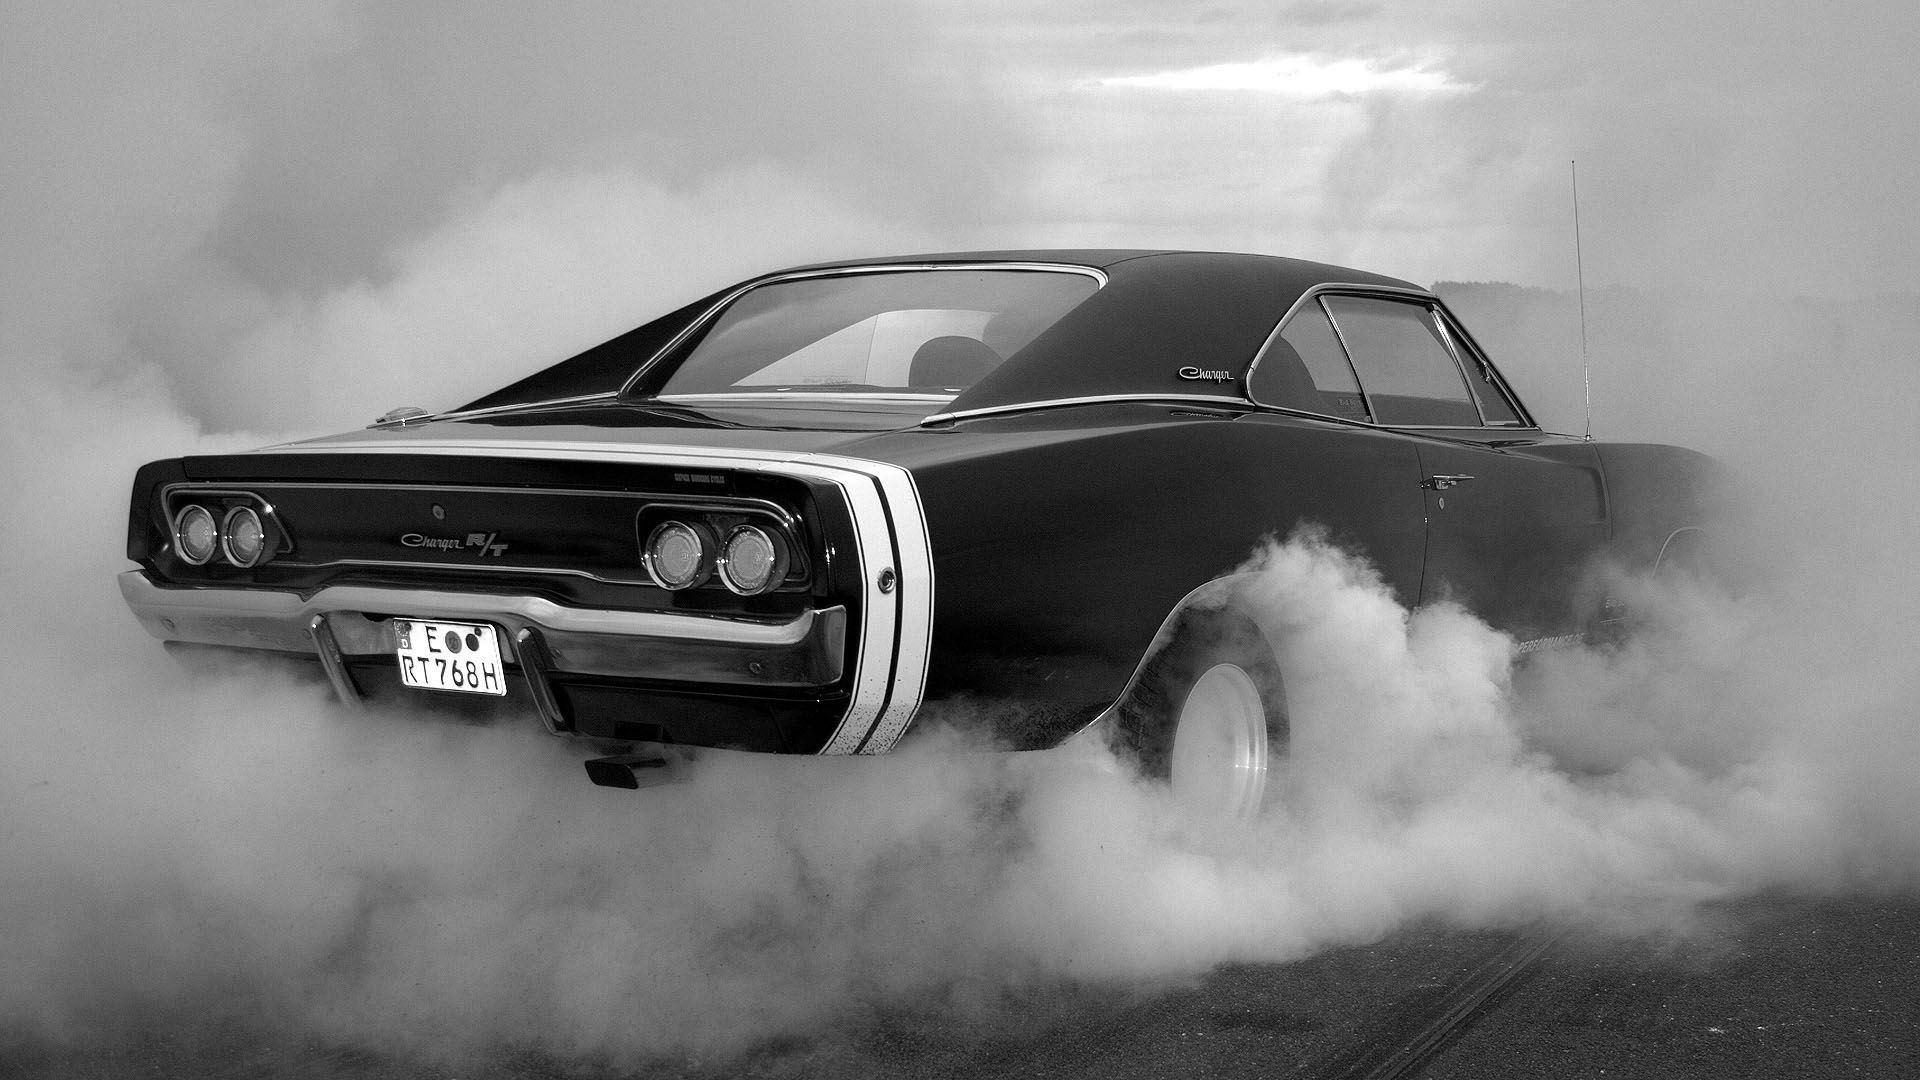 Dodge charge r t inredible vehicle my dream car